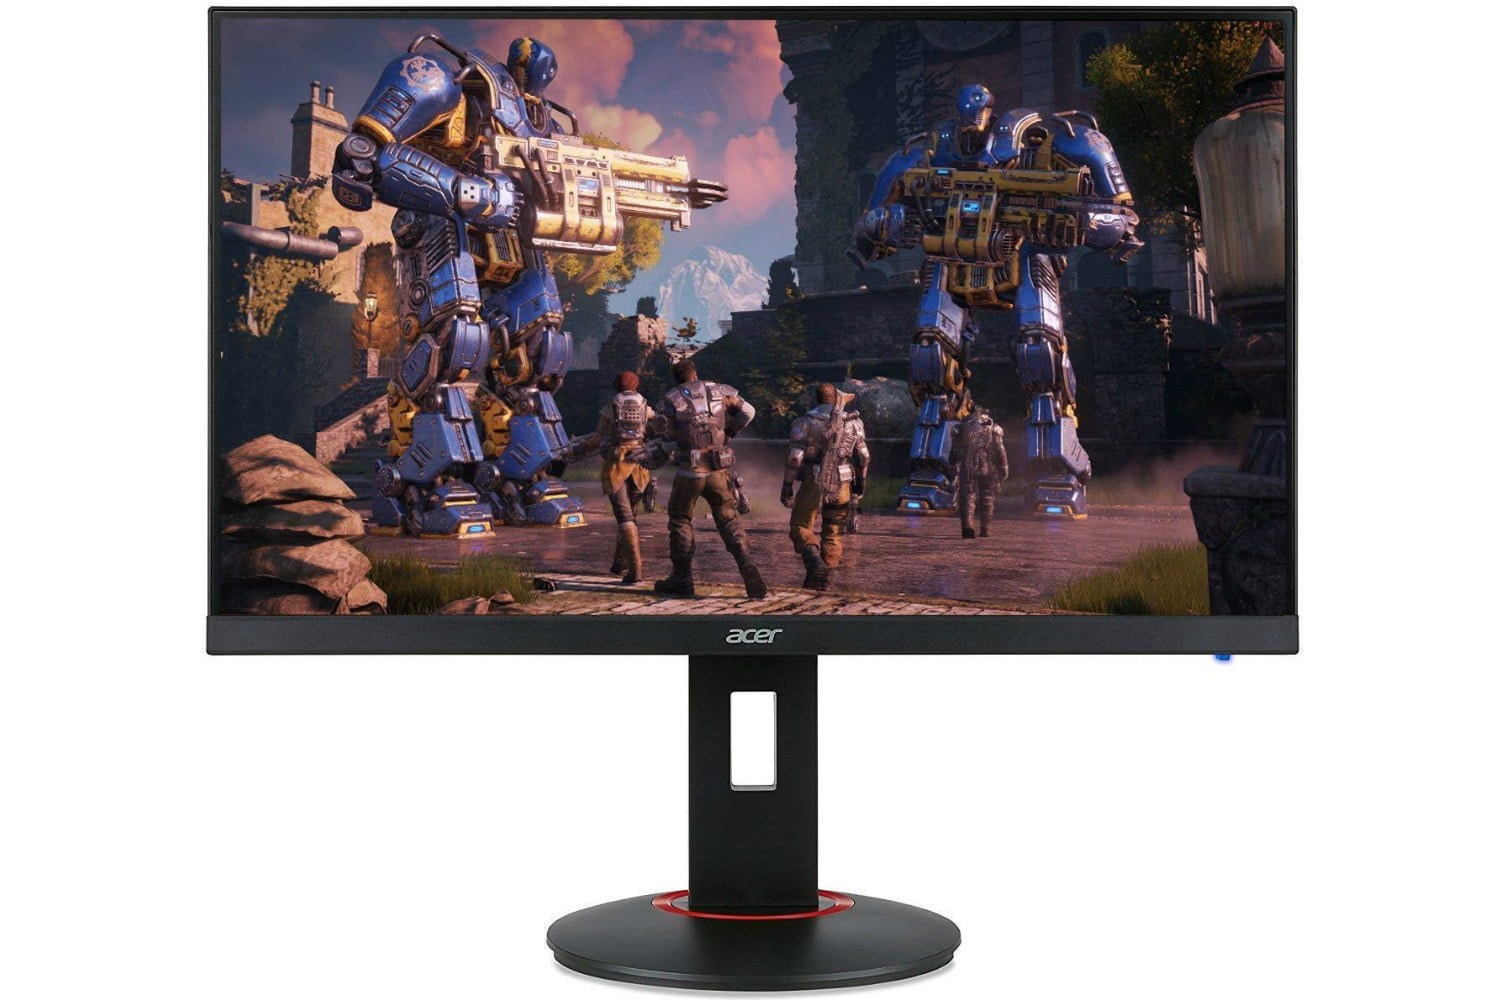 amazon slashes prices on acer laptops desktops monitors and gaming gear xf270h bbmiiprx 27 inch full hd 1920 x 1080 zero fram